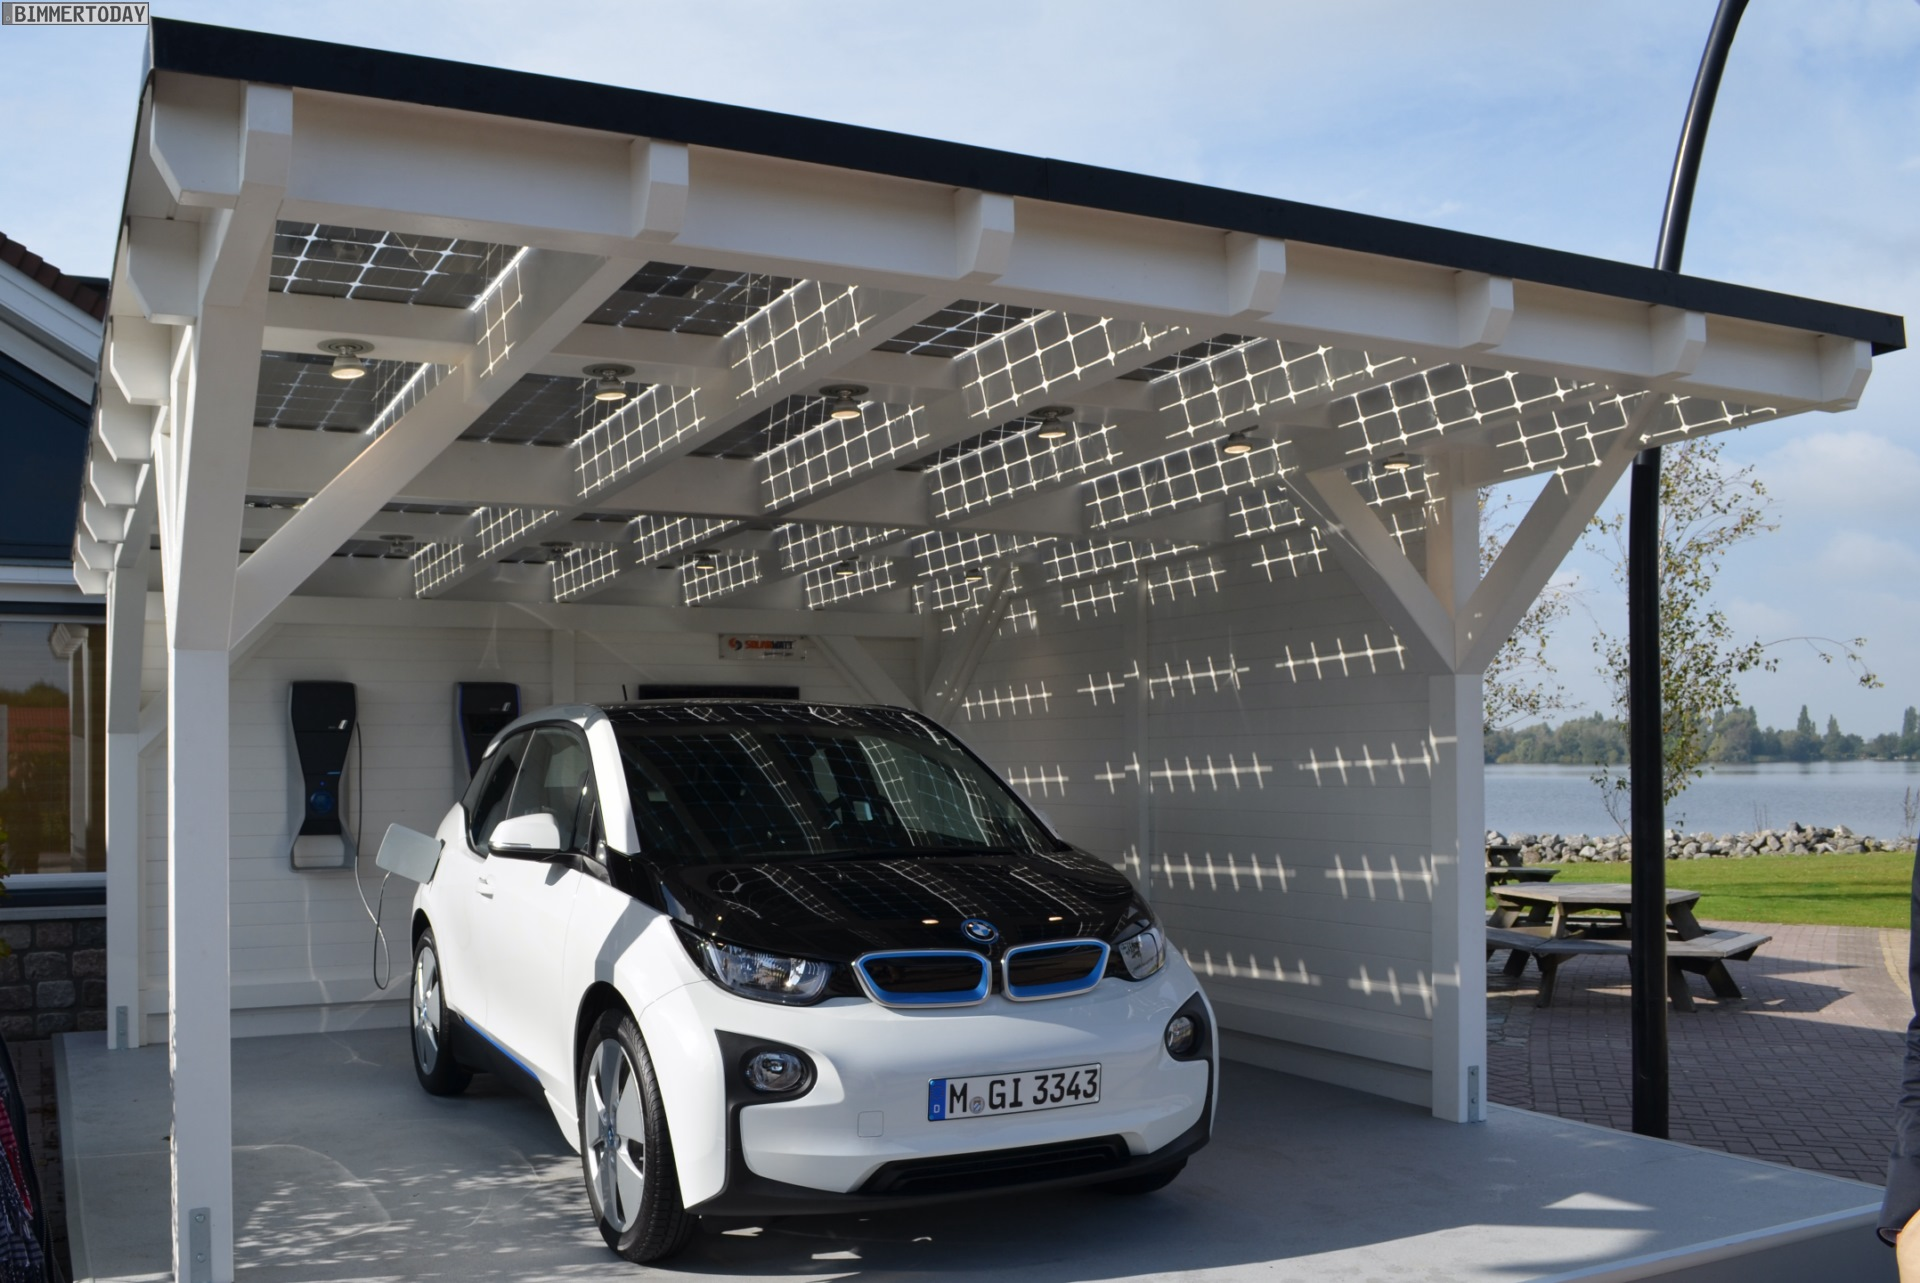 bmw i3 in capparisweiss unter solarwatt carport mit solar anlage. Black Bedroom Furniture Sets. Home Design Ideas